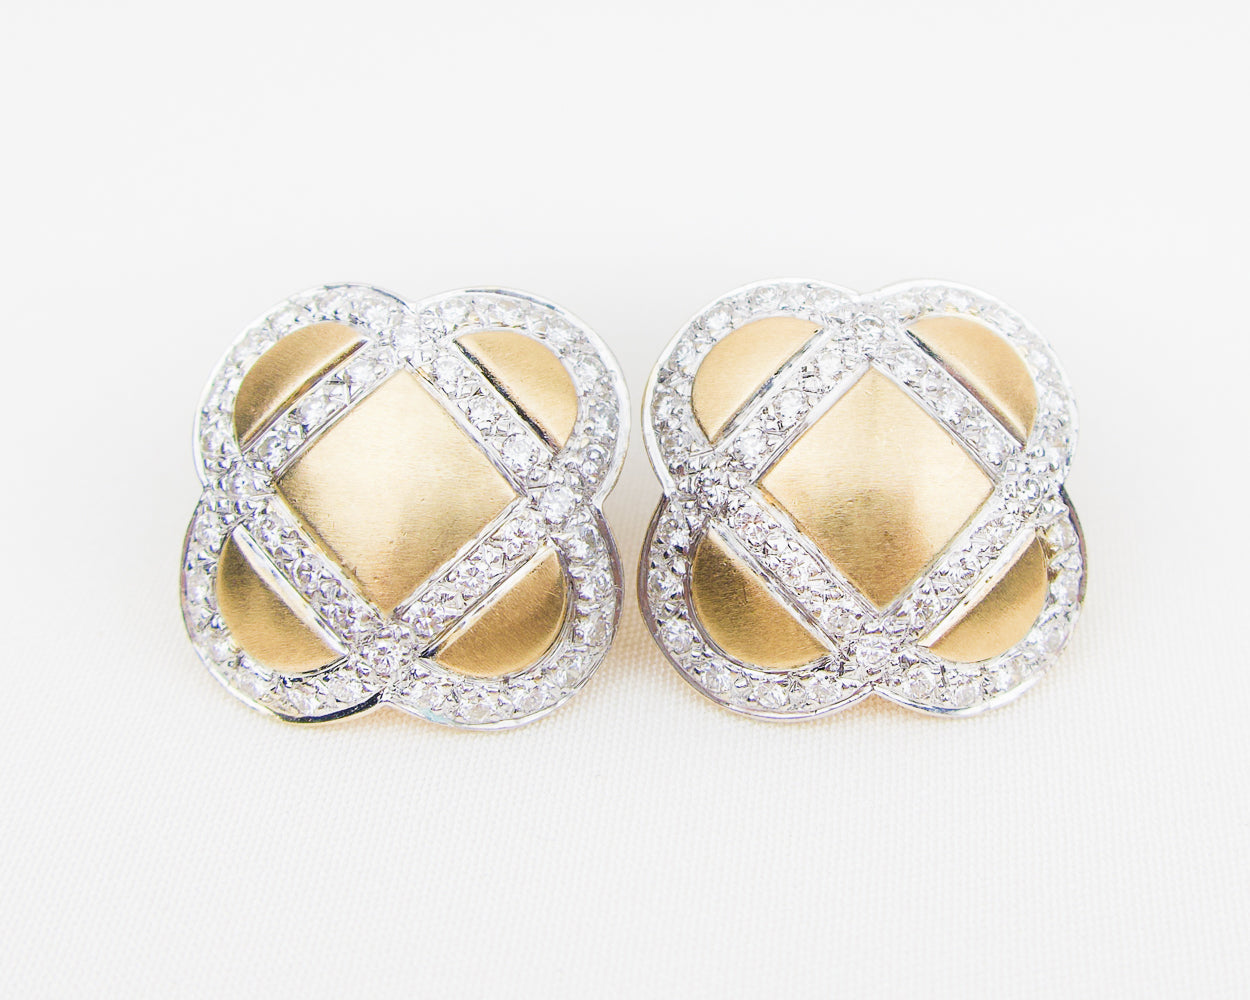 Esther Gallant Brushed Gold Earrings with Diamonds